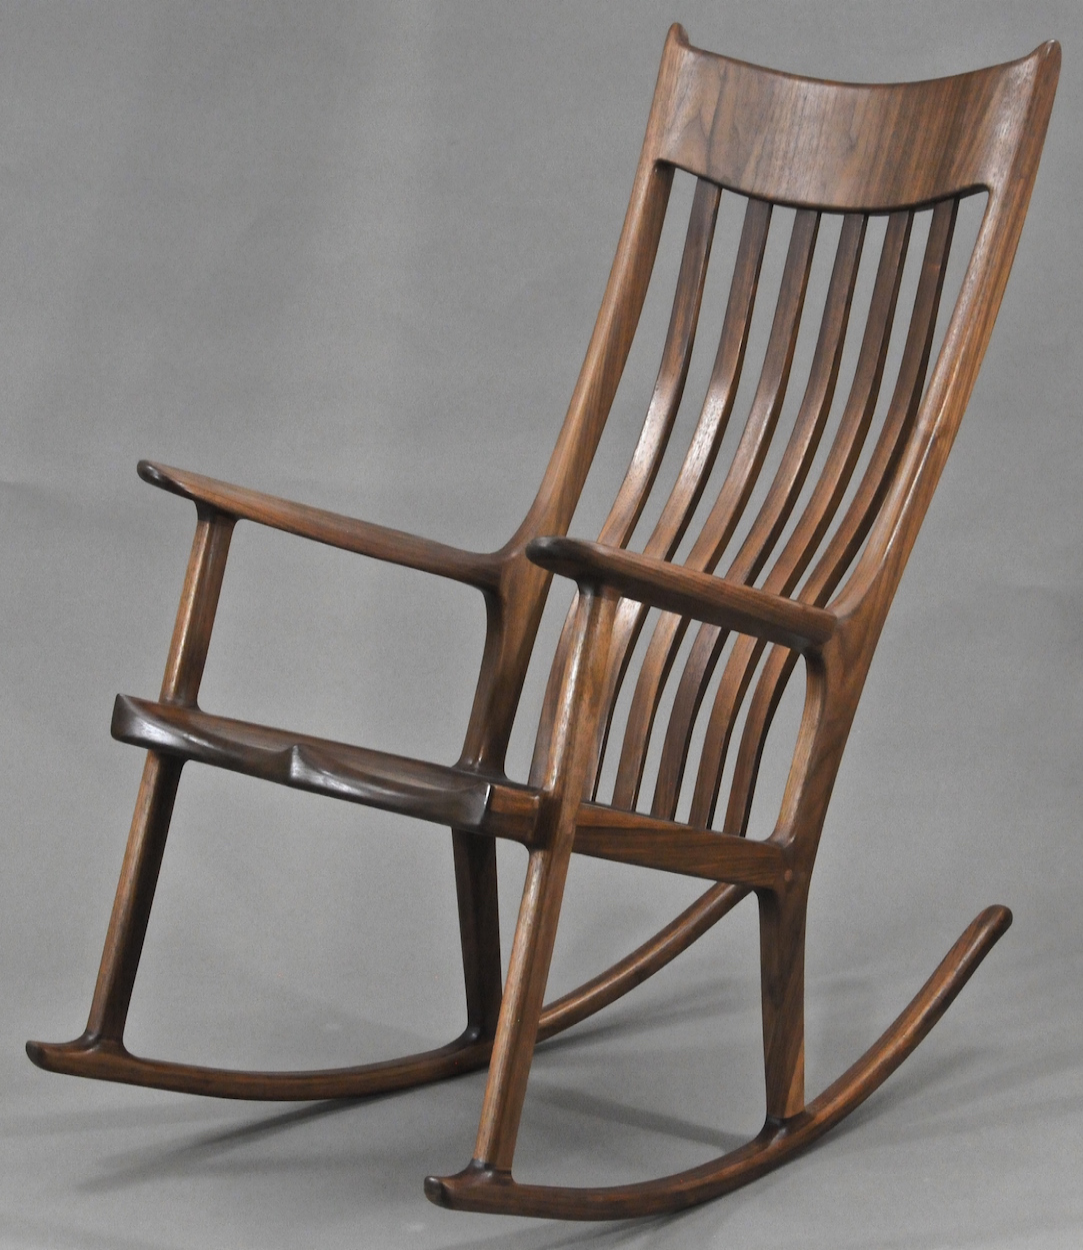 Making A Rocking Chair The